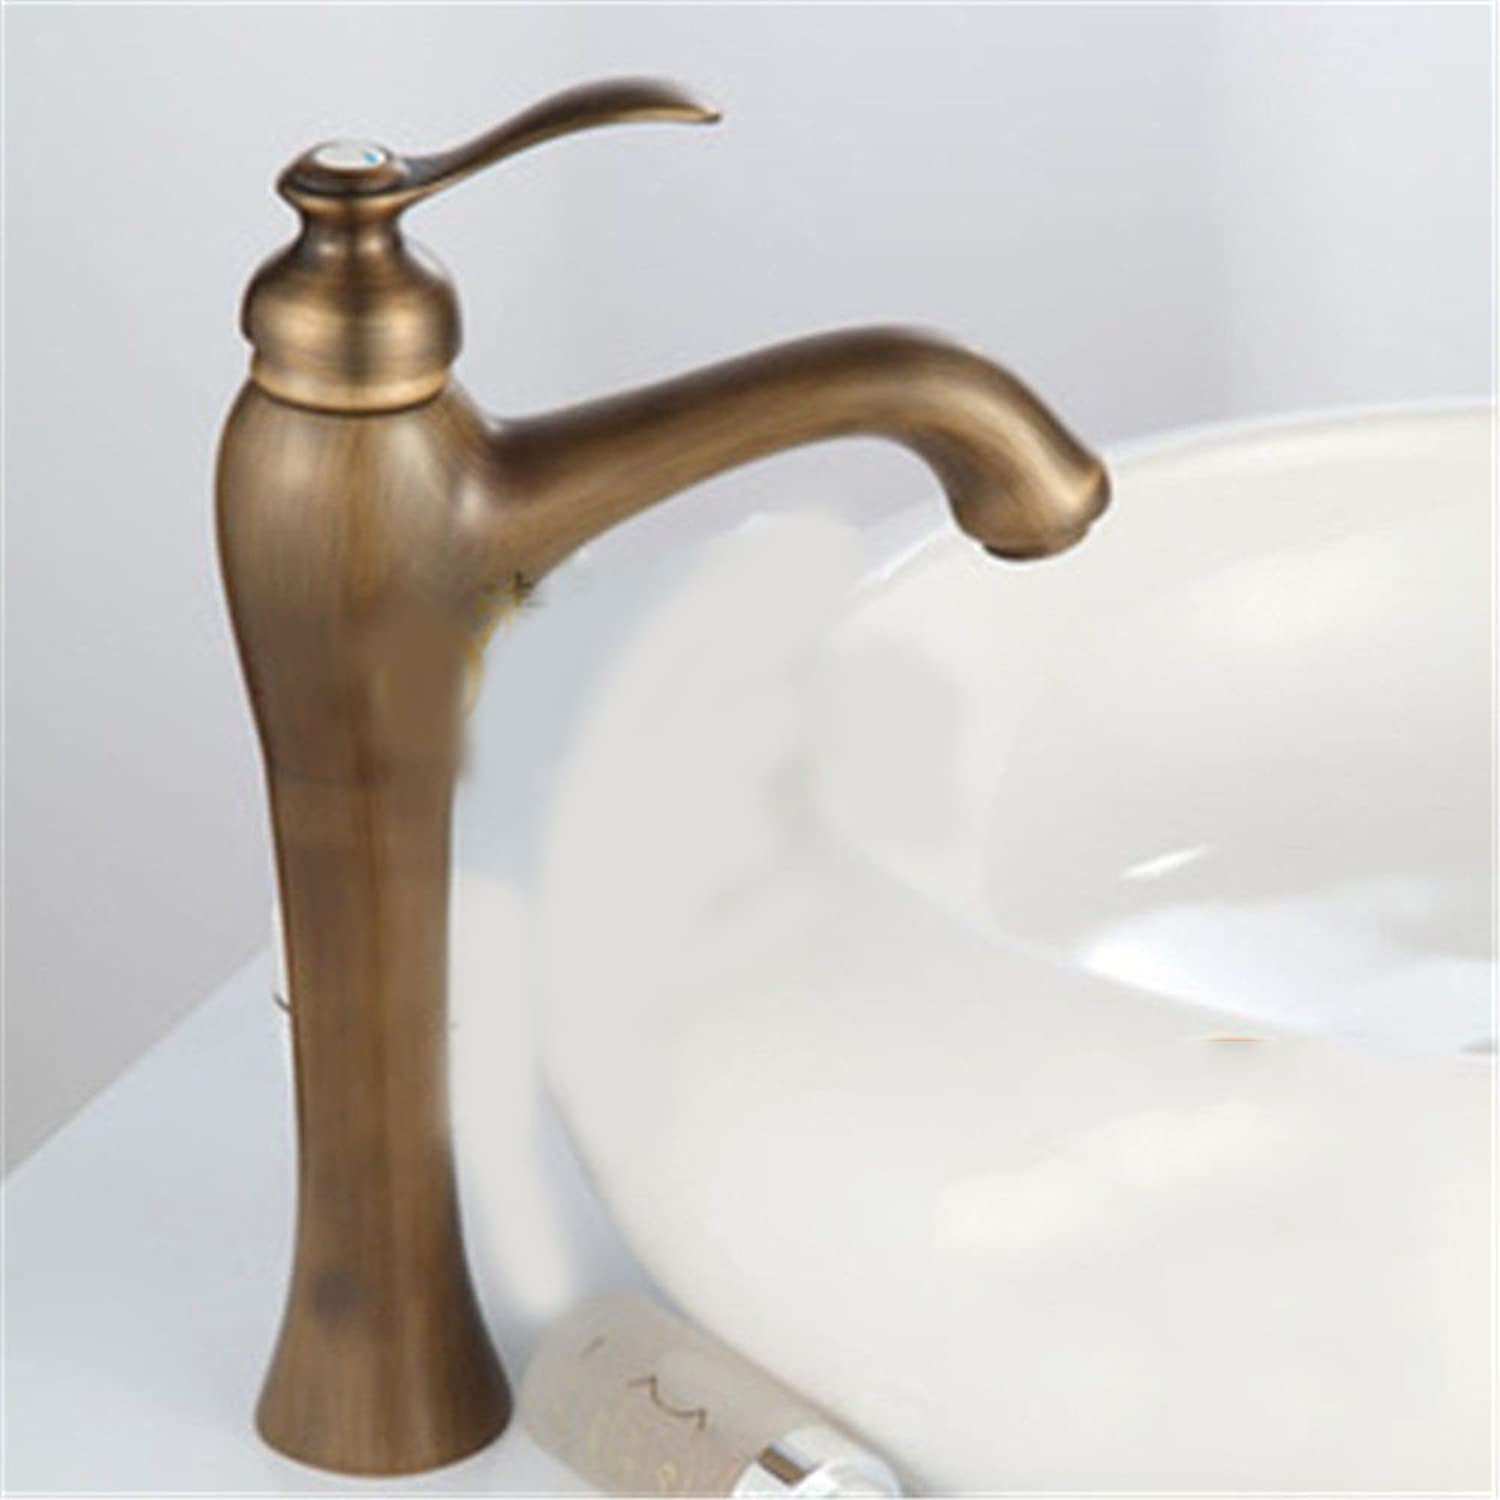 LHS Antique Bronze wash basin-wide heightening European hot and cold faucet